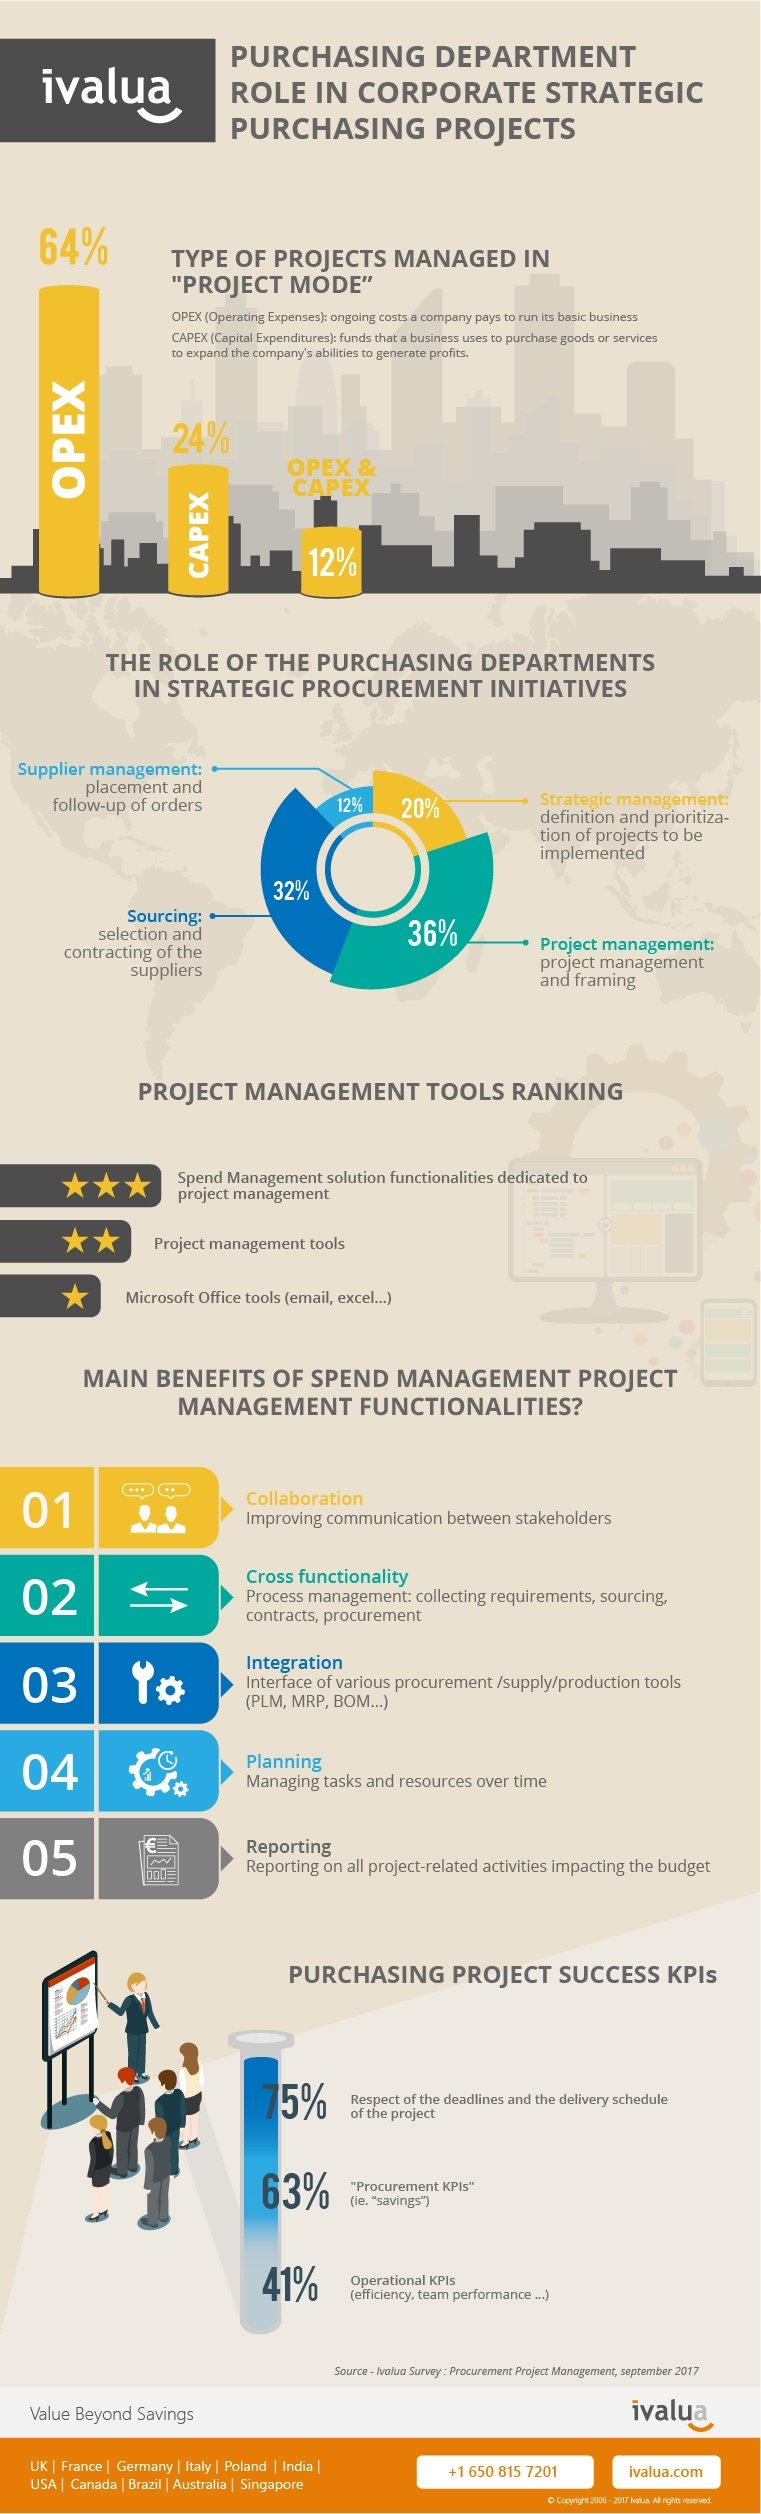 ivalua-infographic-purchasing-department-role-in-corporate-strategic-purchasing-projects-1.jpg